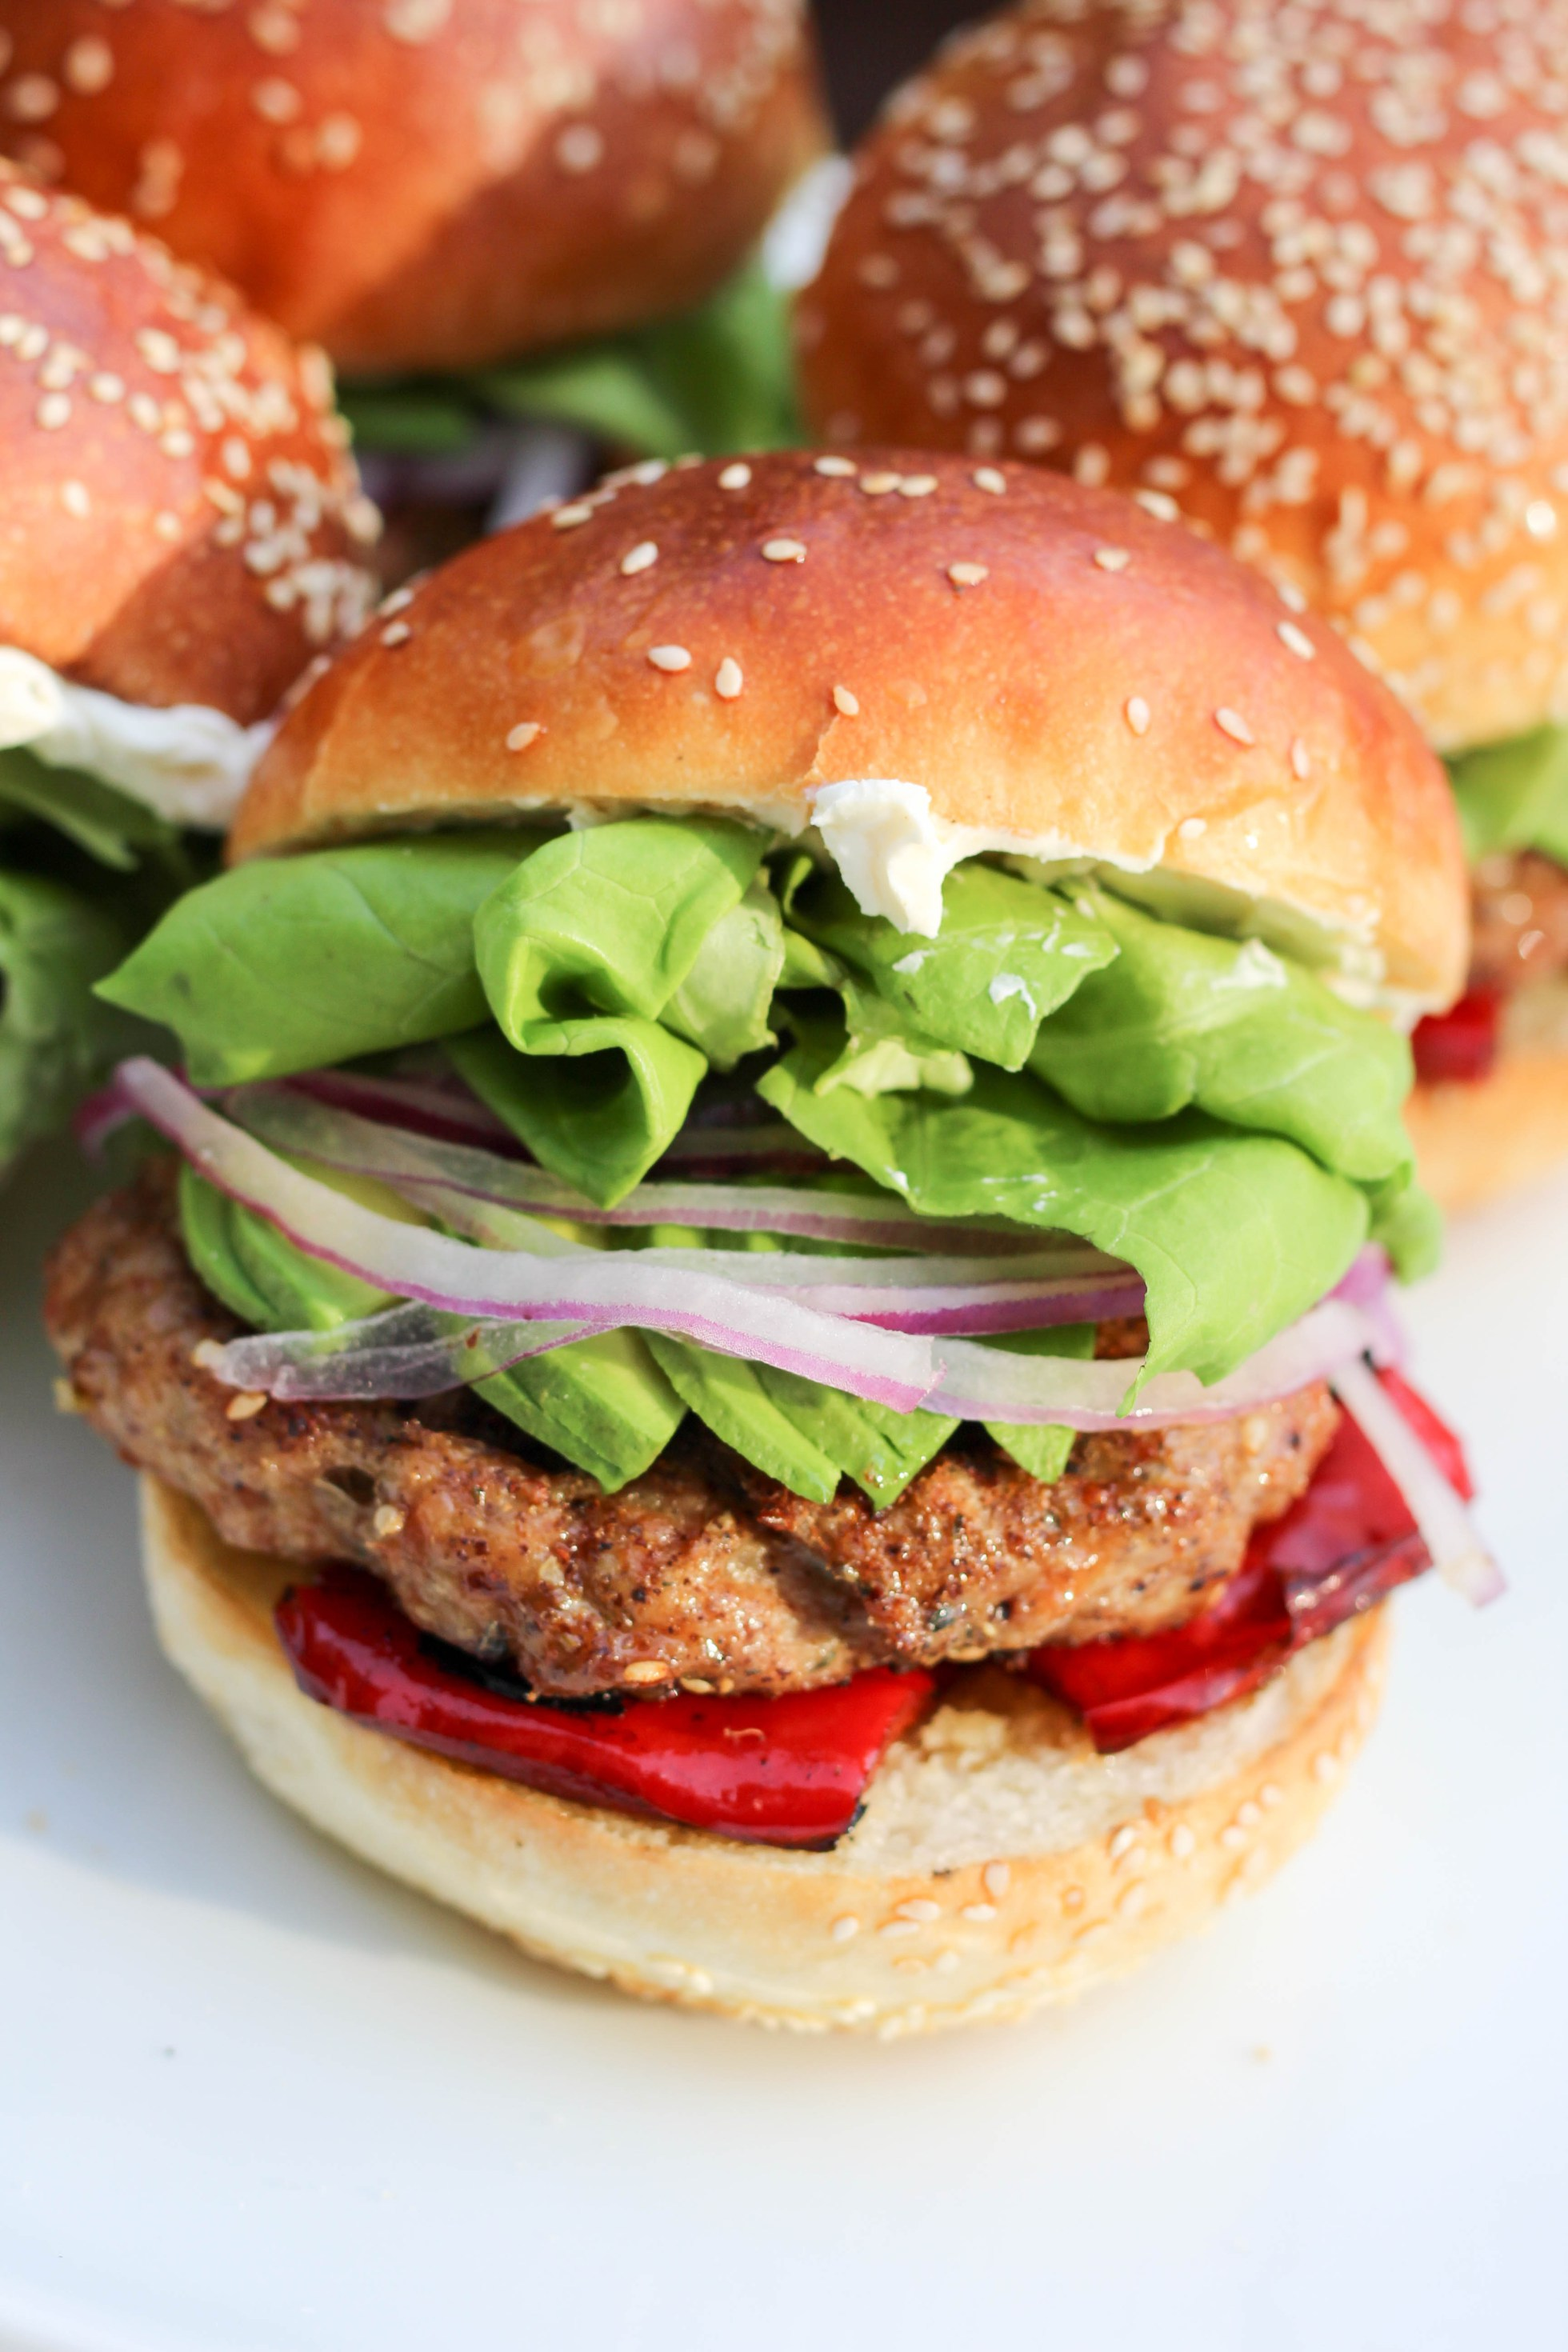 za-ha zaatar recipe idea chicken burgers